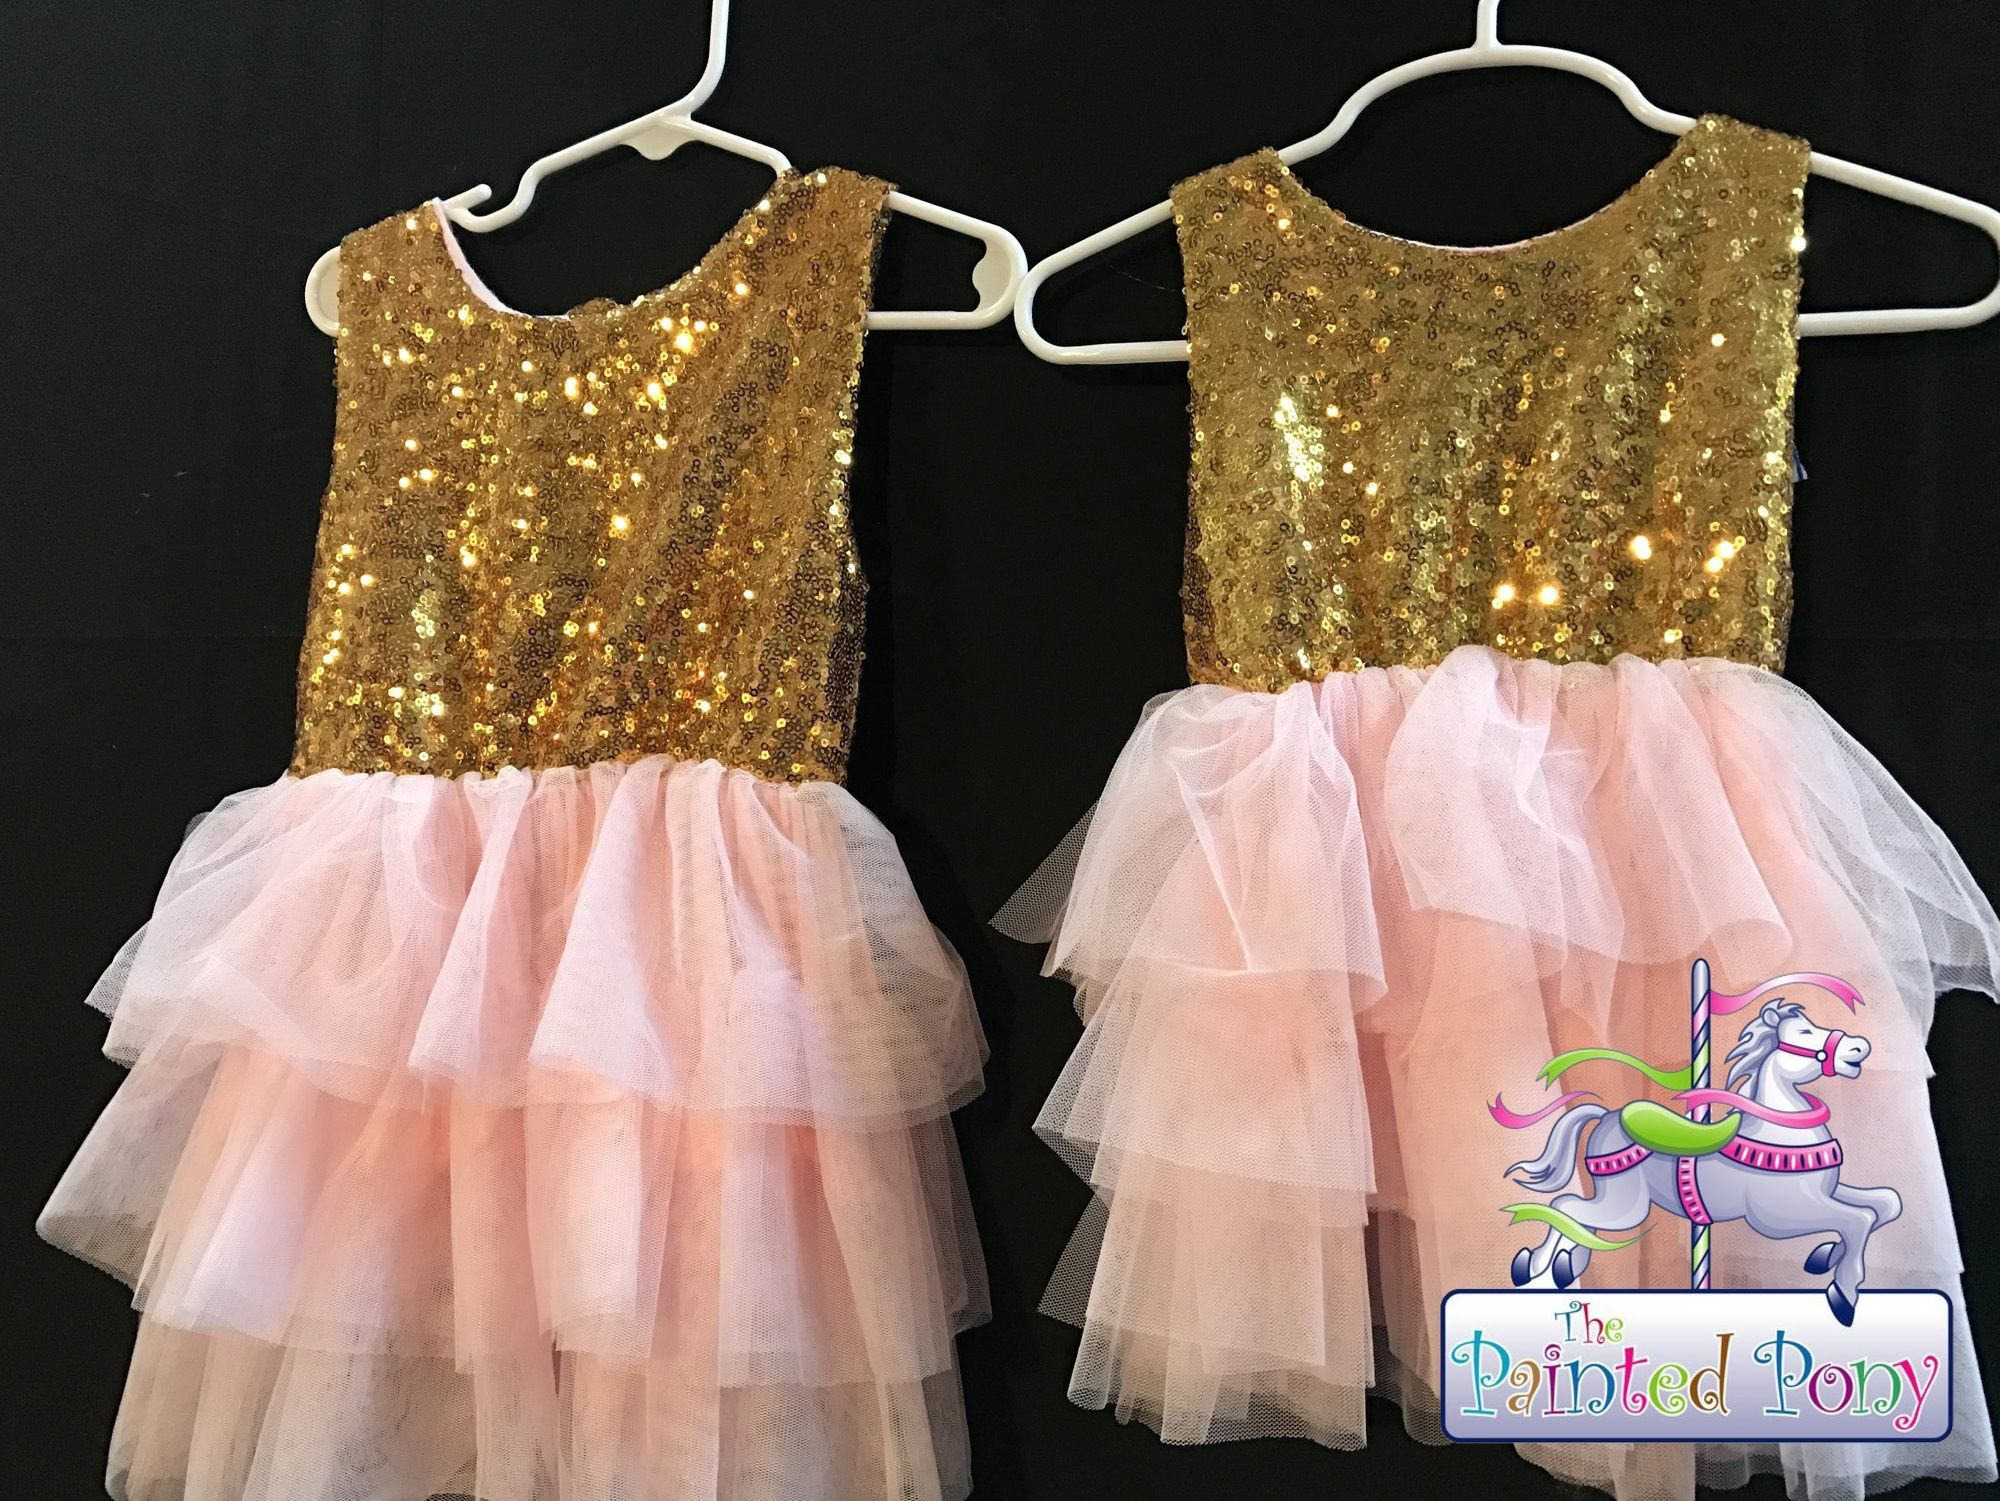 Pink and gold dress by Fuerjiafushi, size 3 - 4, $10.99